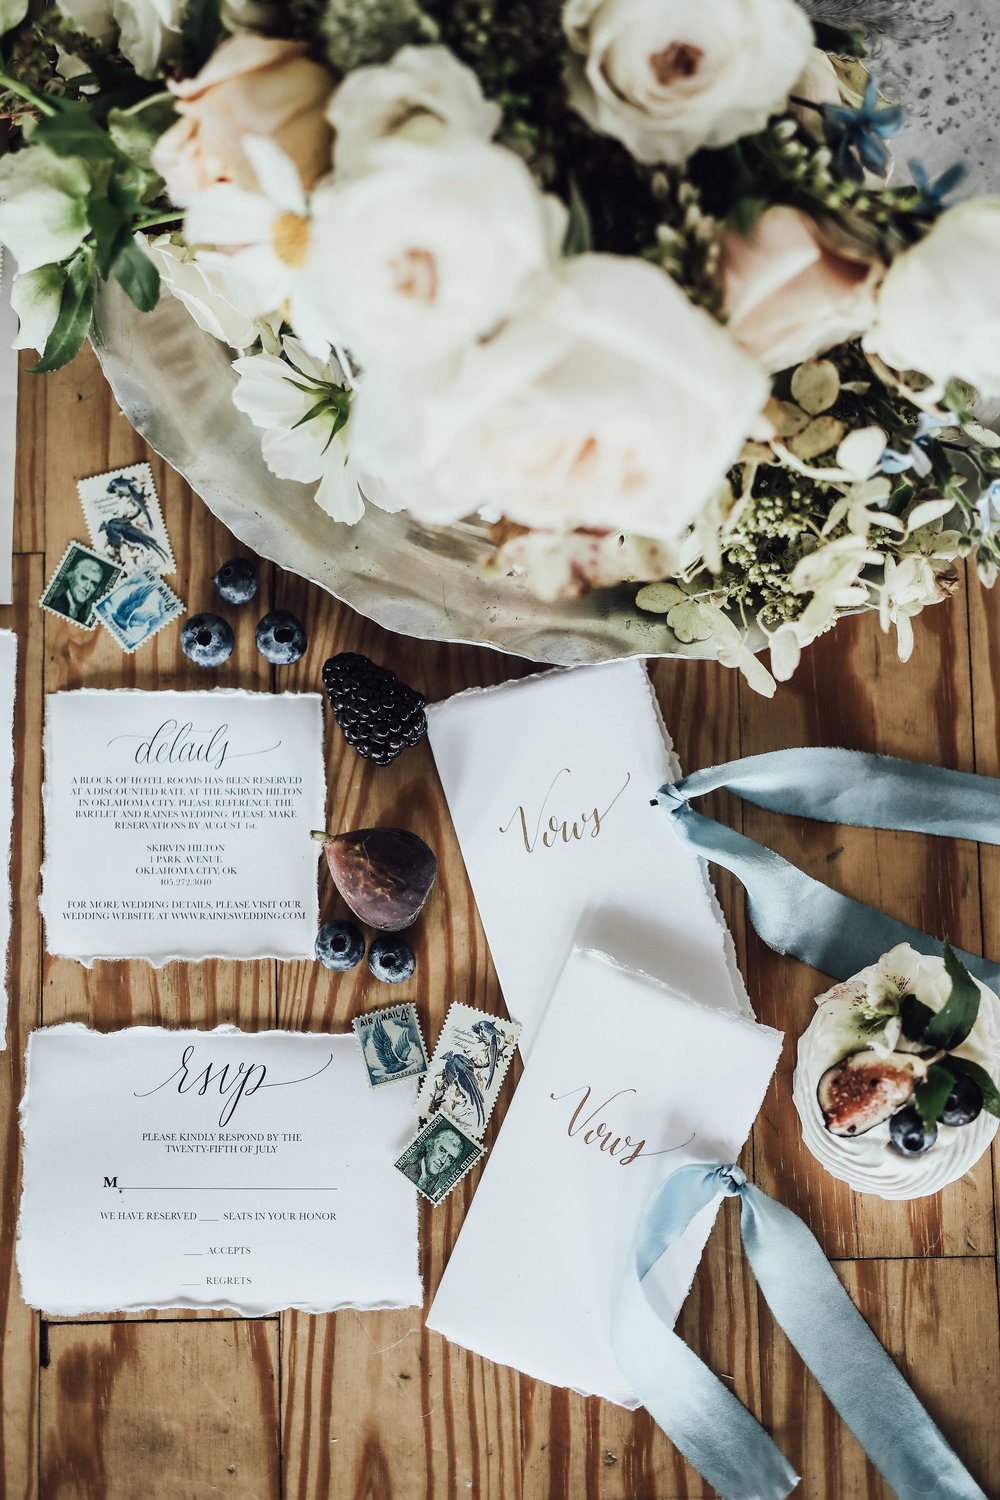 Photo by Rachel Photographs | Flowers by The Wild Mother | Stationery by Celeste Paper Co.